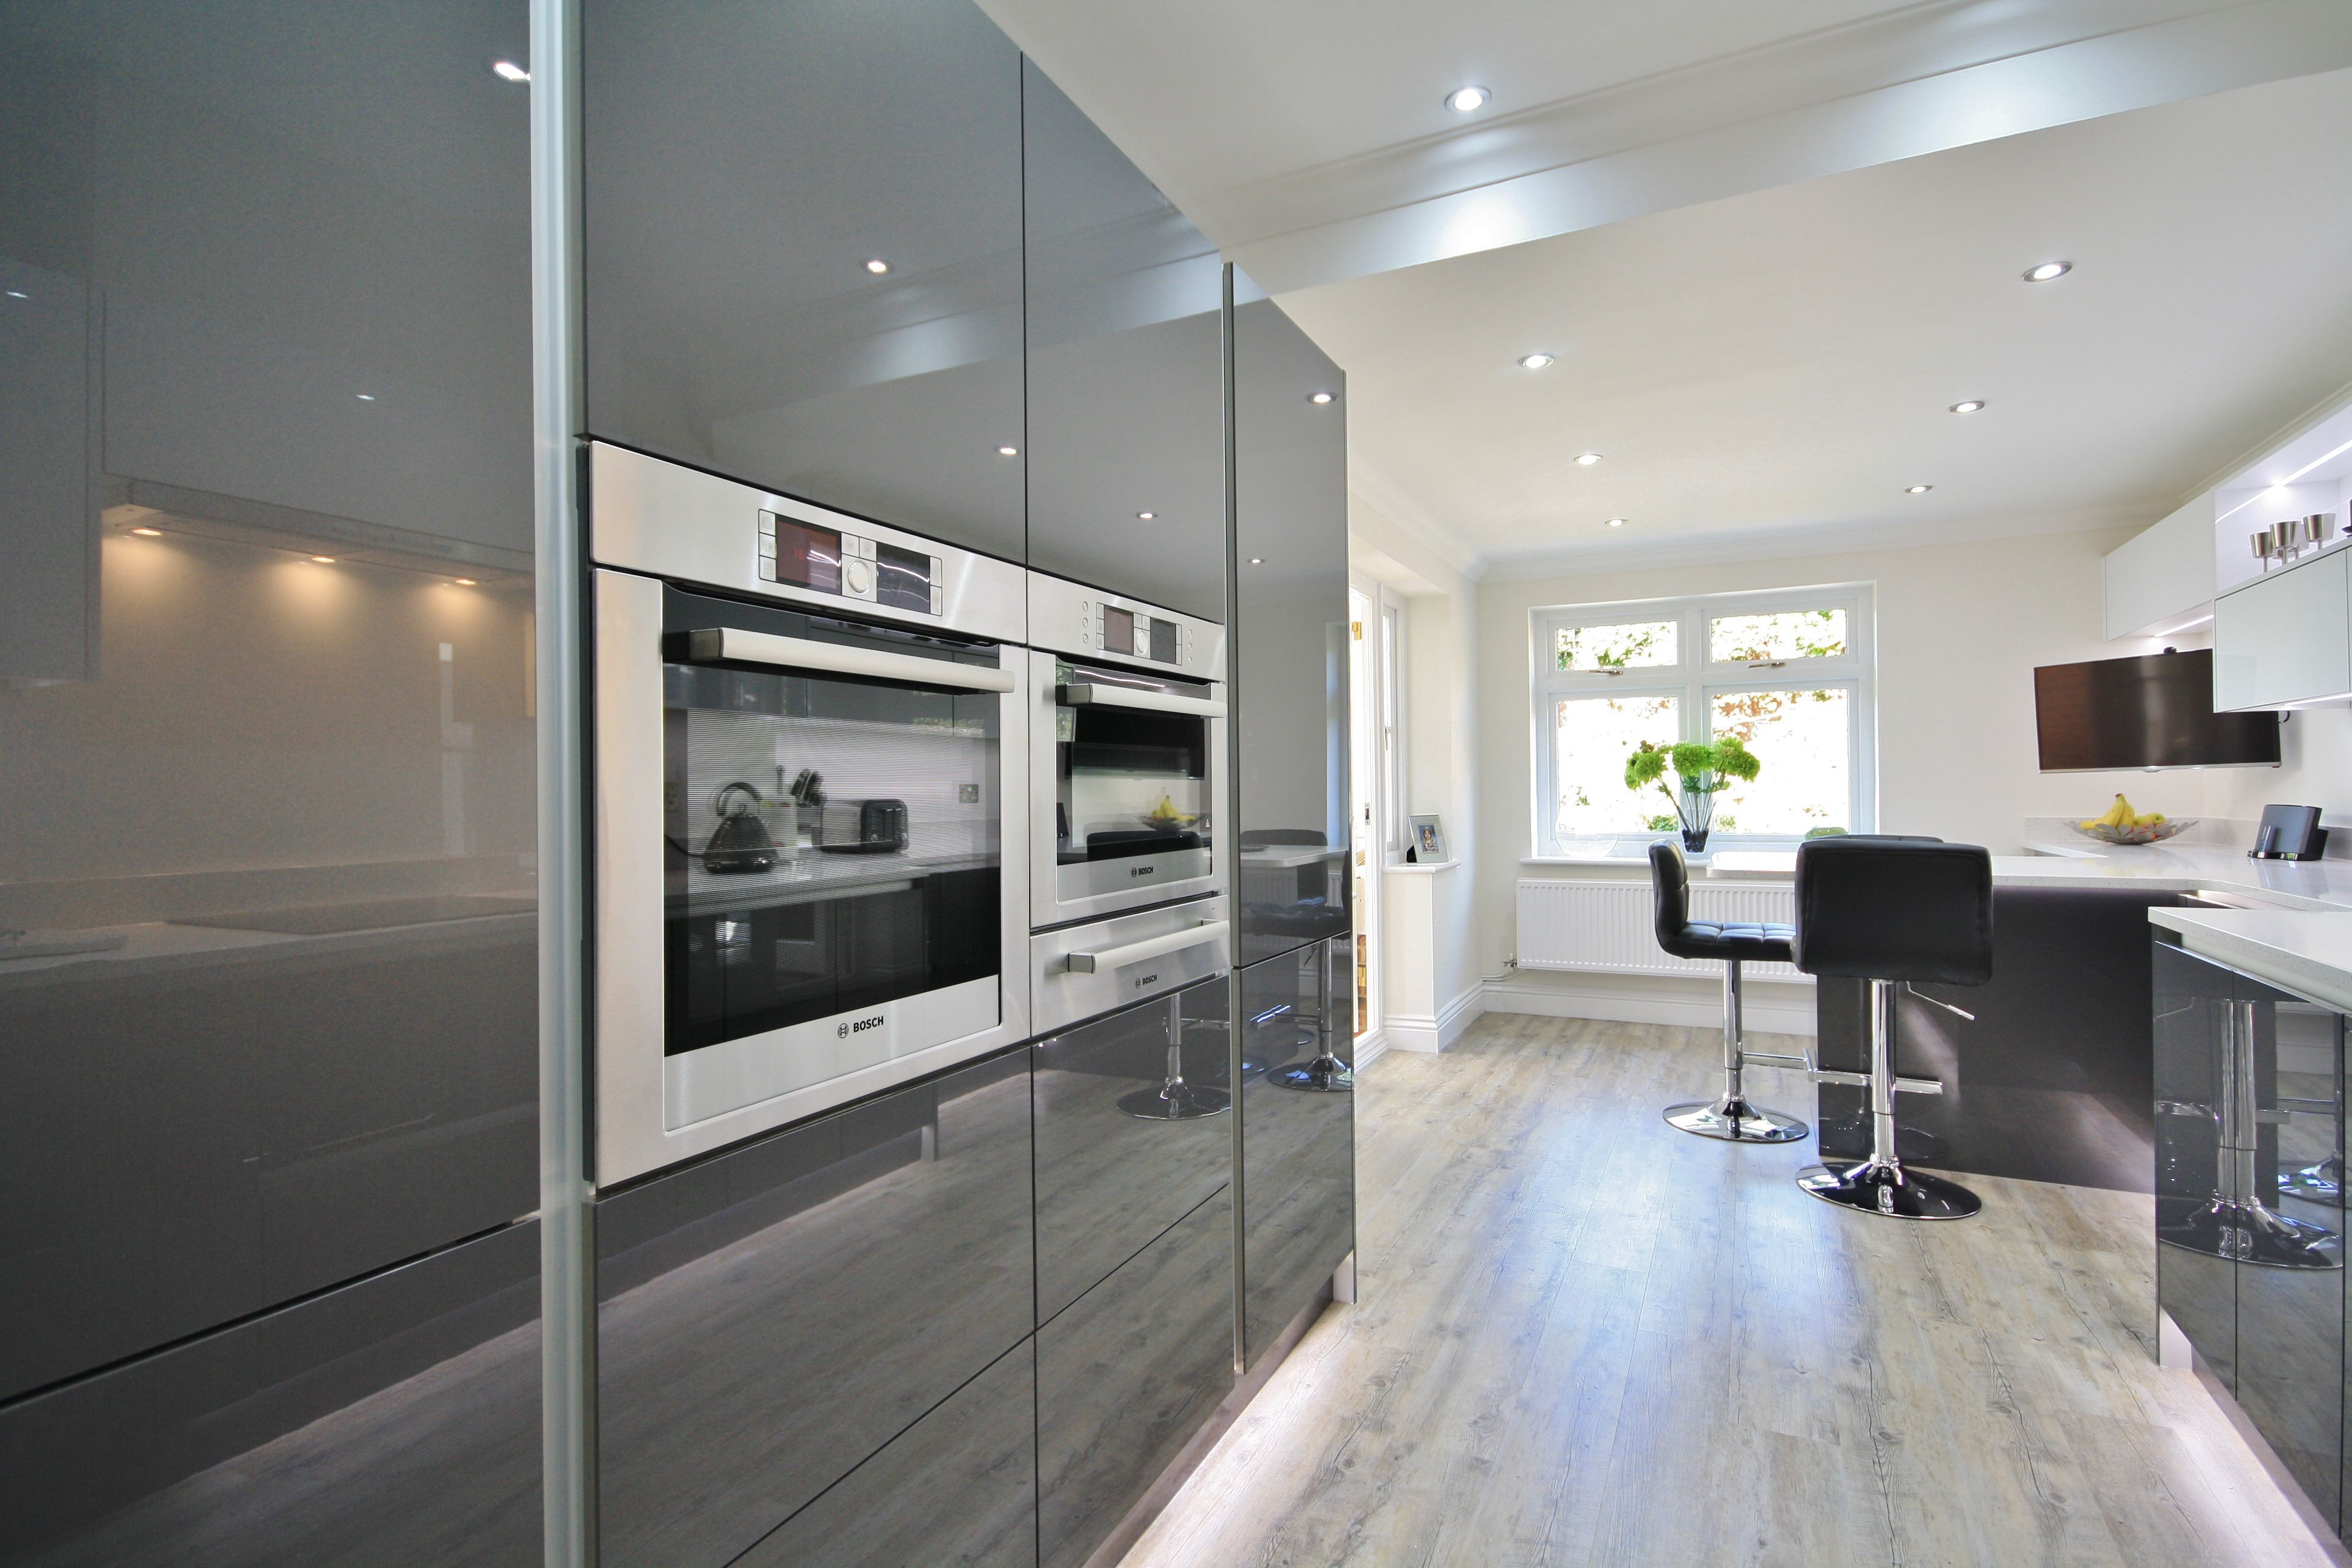 Modern White And Grey Acrylic Kitchen Design With Eye Level Bosch